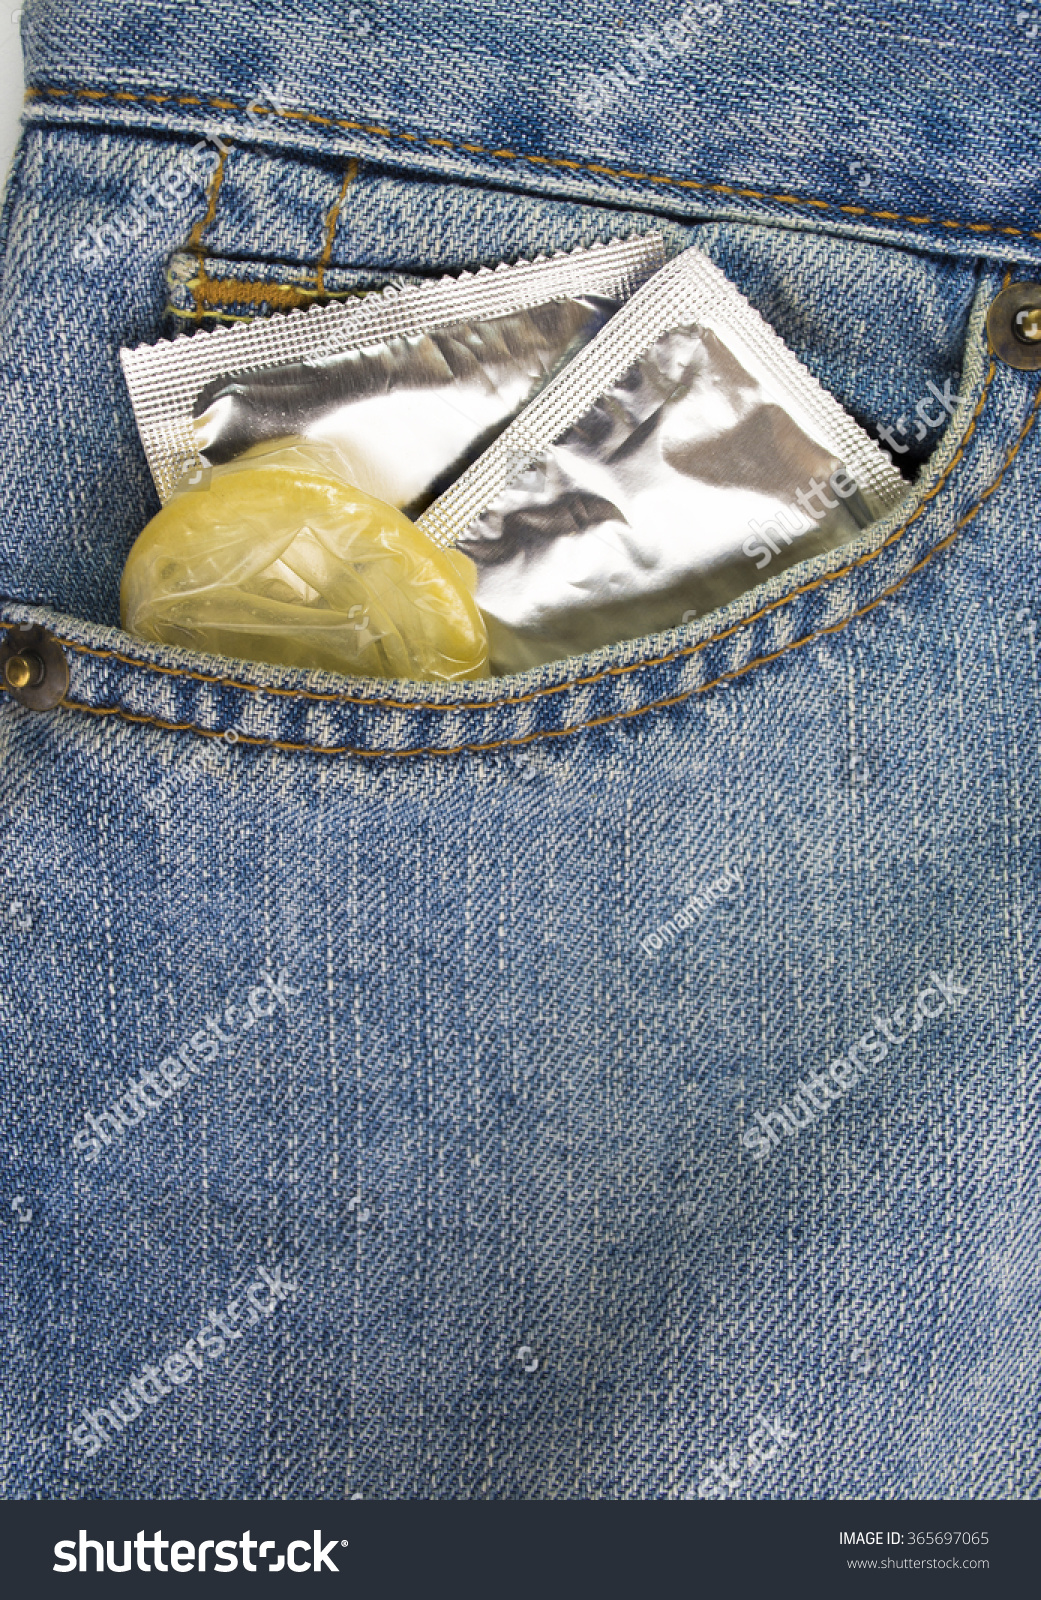 Where to find used condoms-6279